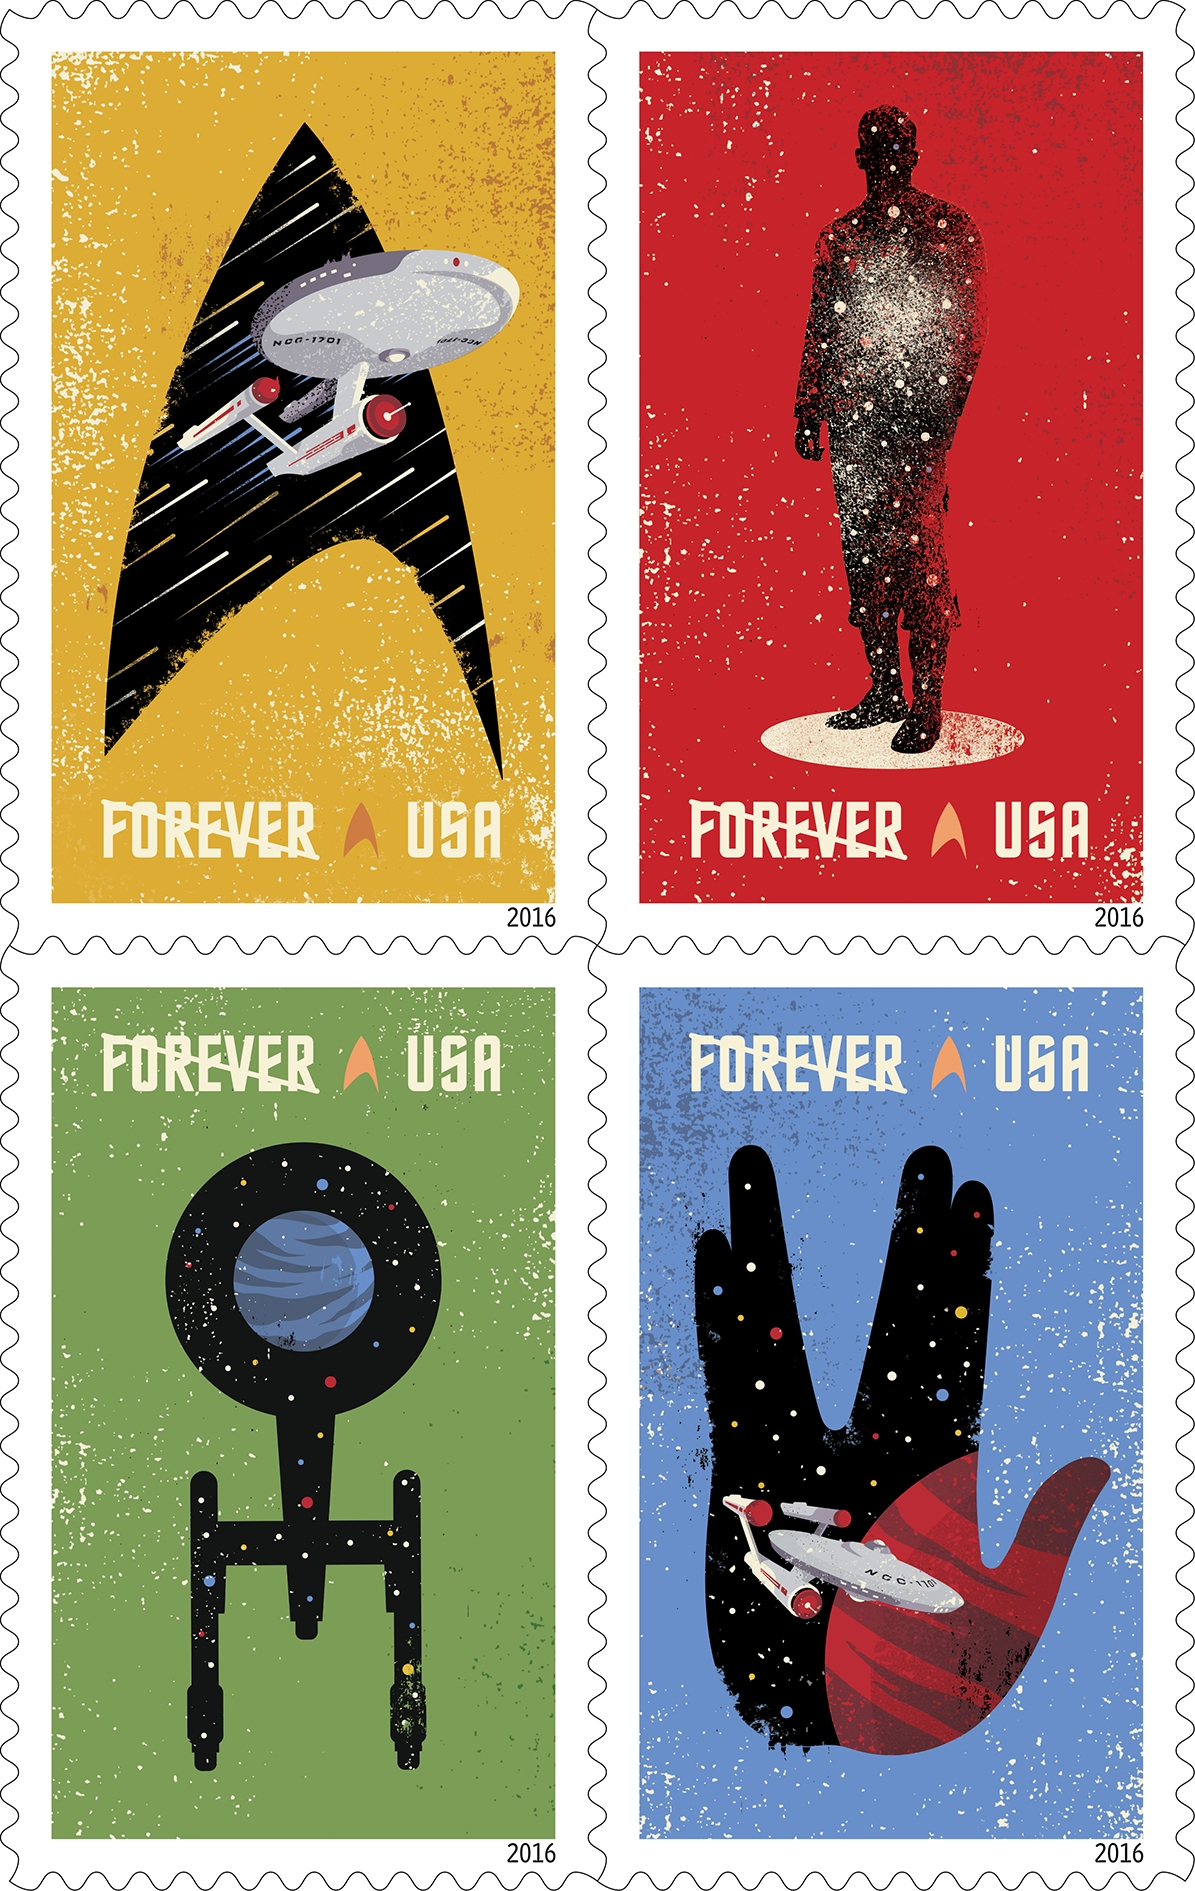 Usps New Stamp Issues 2016 Forever Stamps Stamp News Now - United-states-forever-stamps